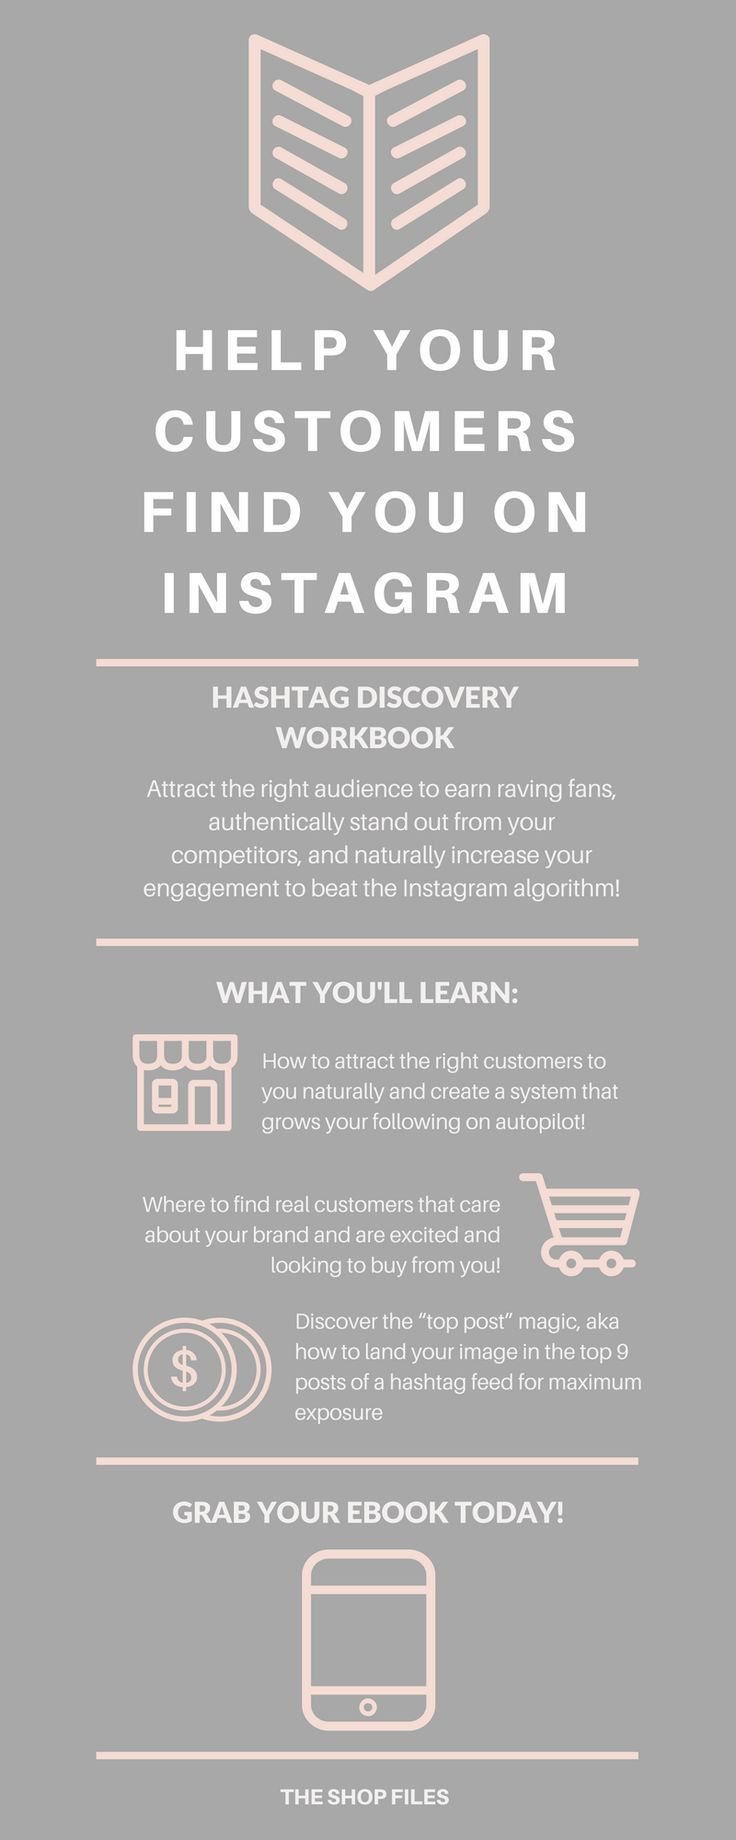 Quick and simple tips to grow your Instagram followers (and sales!) on autopilot by attracting the *right* people through hashtags! Grab your copy of the Hashtag Discovery Workbook - How to Grow Instagram Followers | Instagram Hashtag Ideas